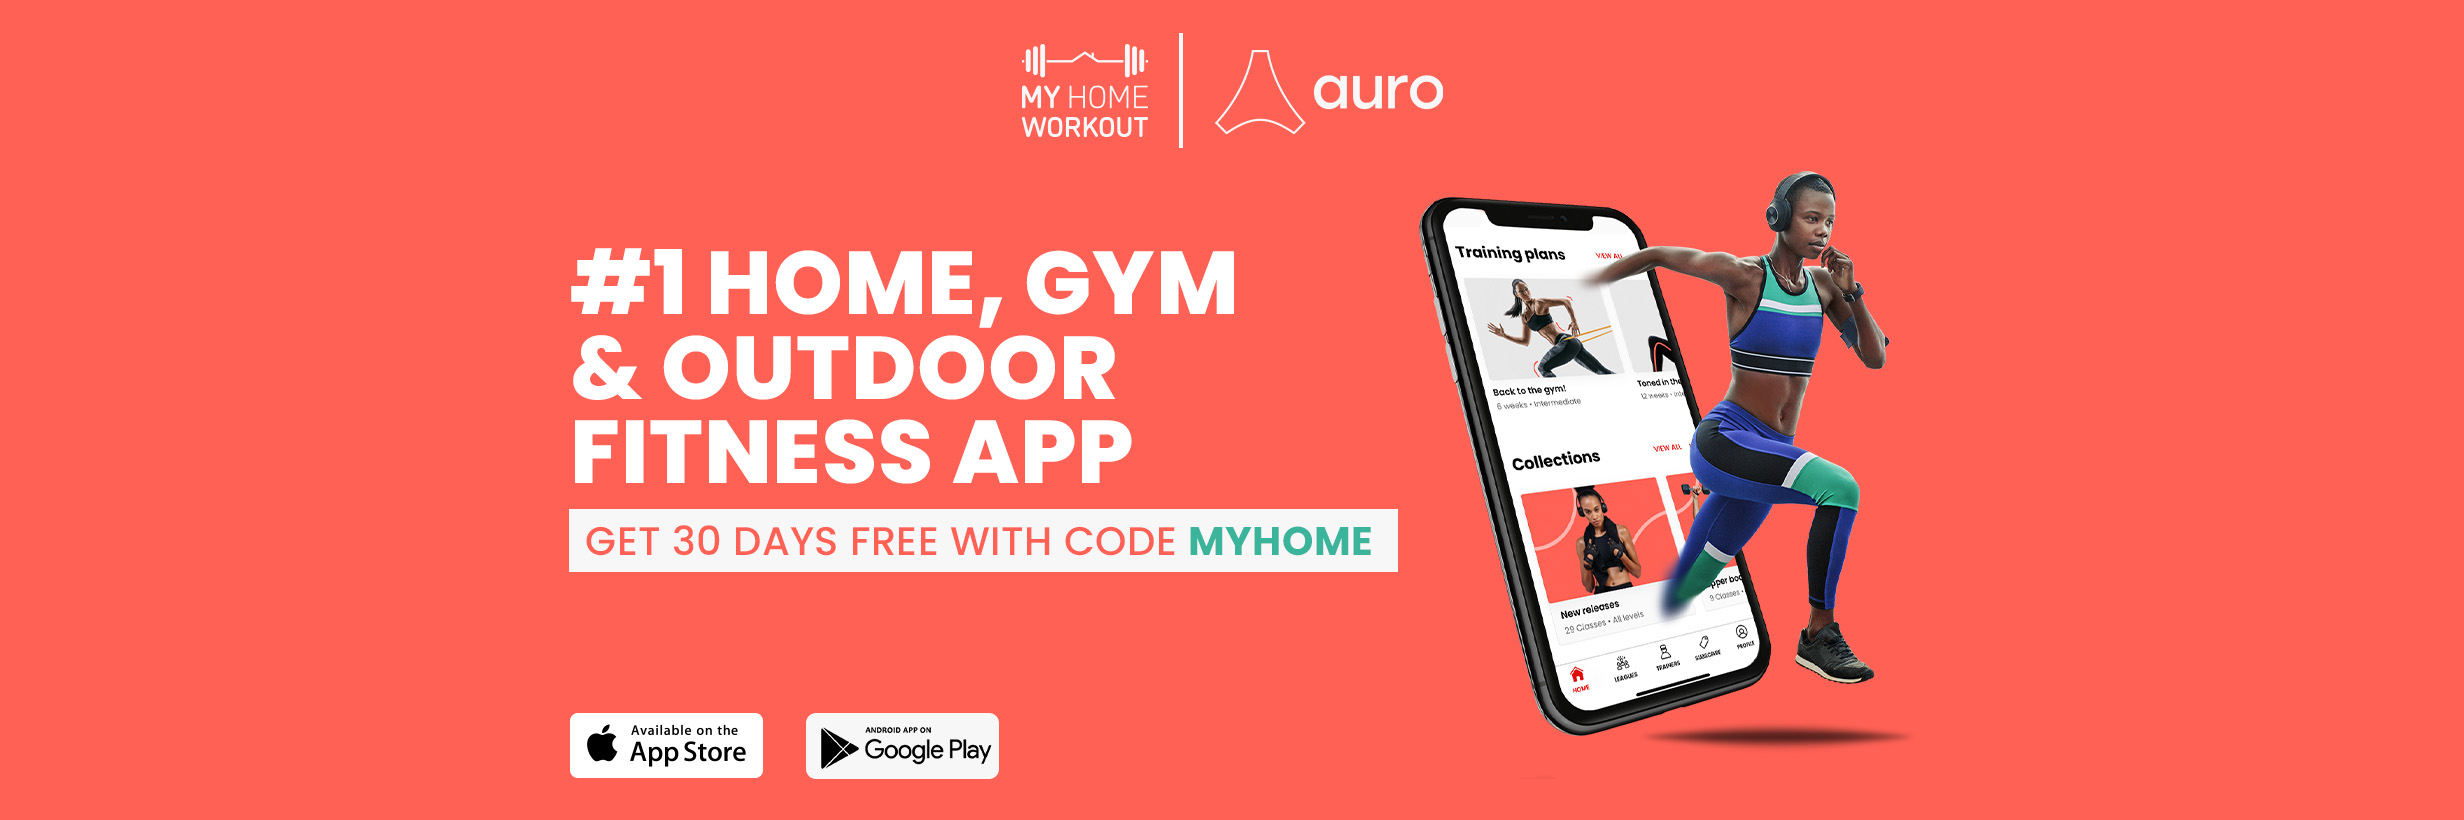 #1 Home, Gym & Outdoor Fitness